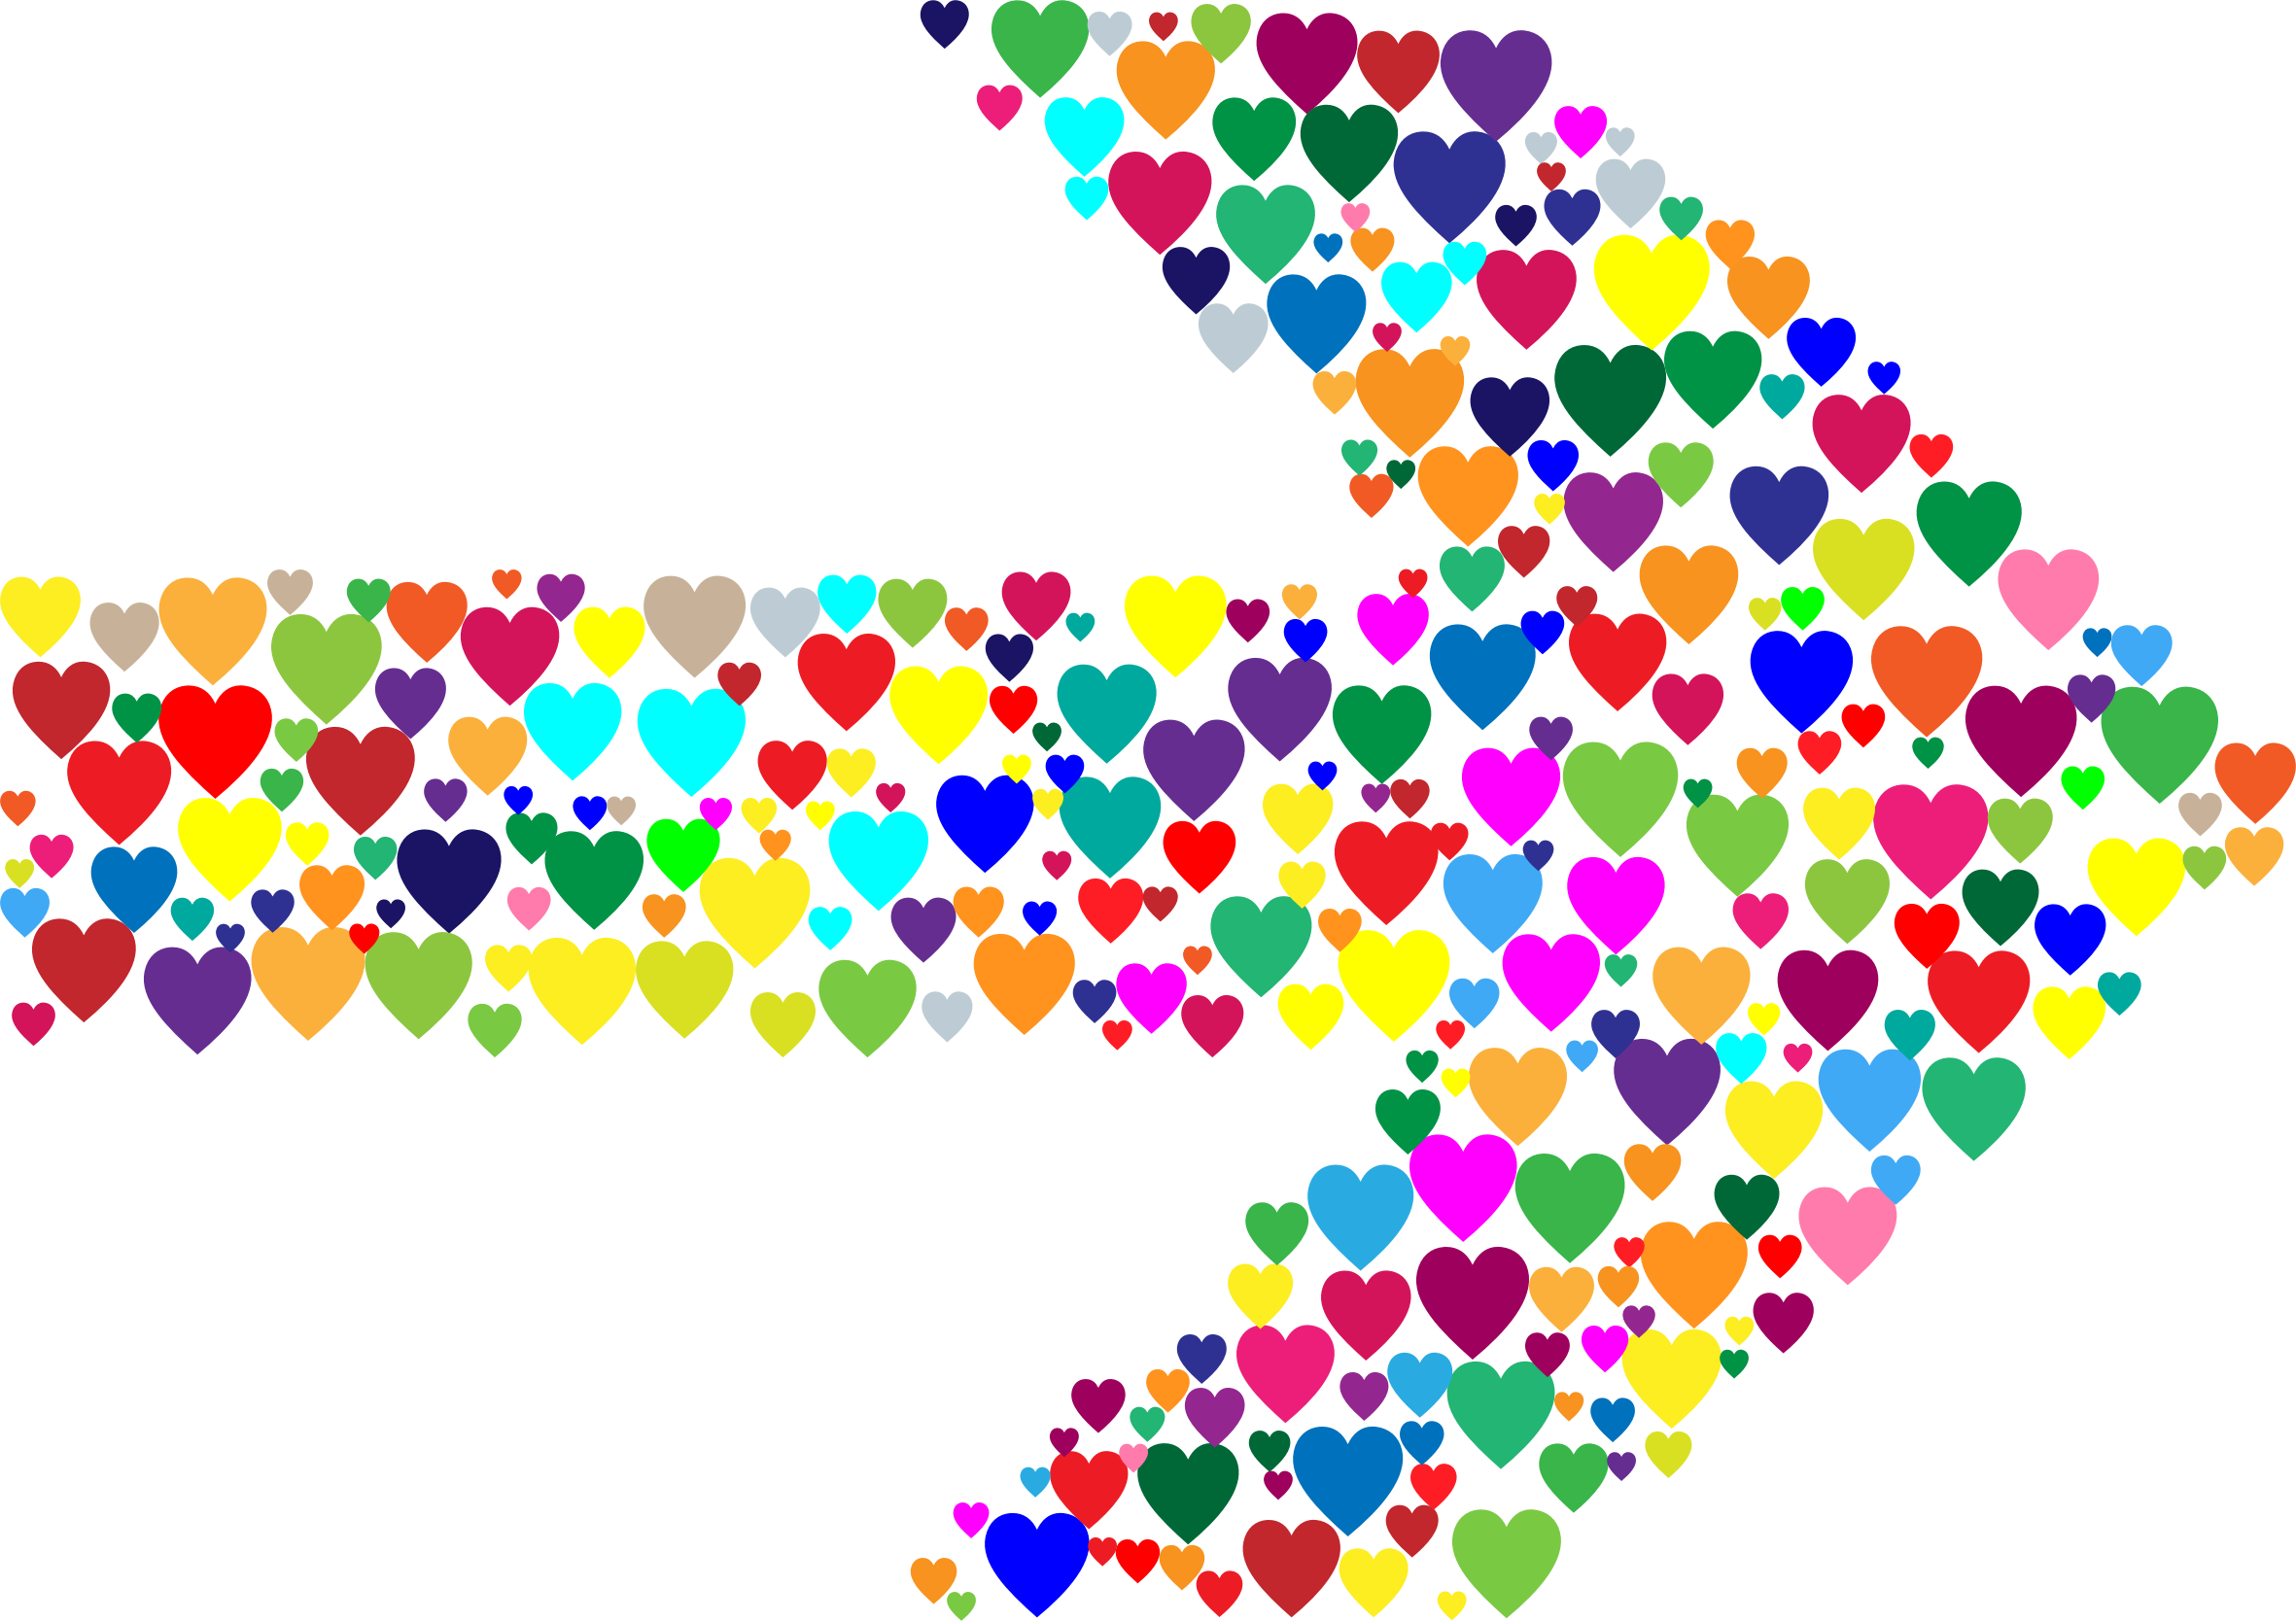 Pocket clipart colorful. Hearts arrow big image